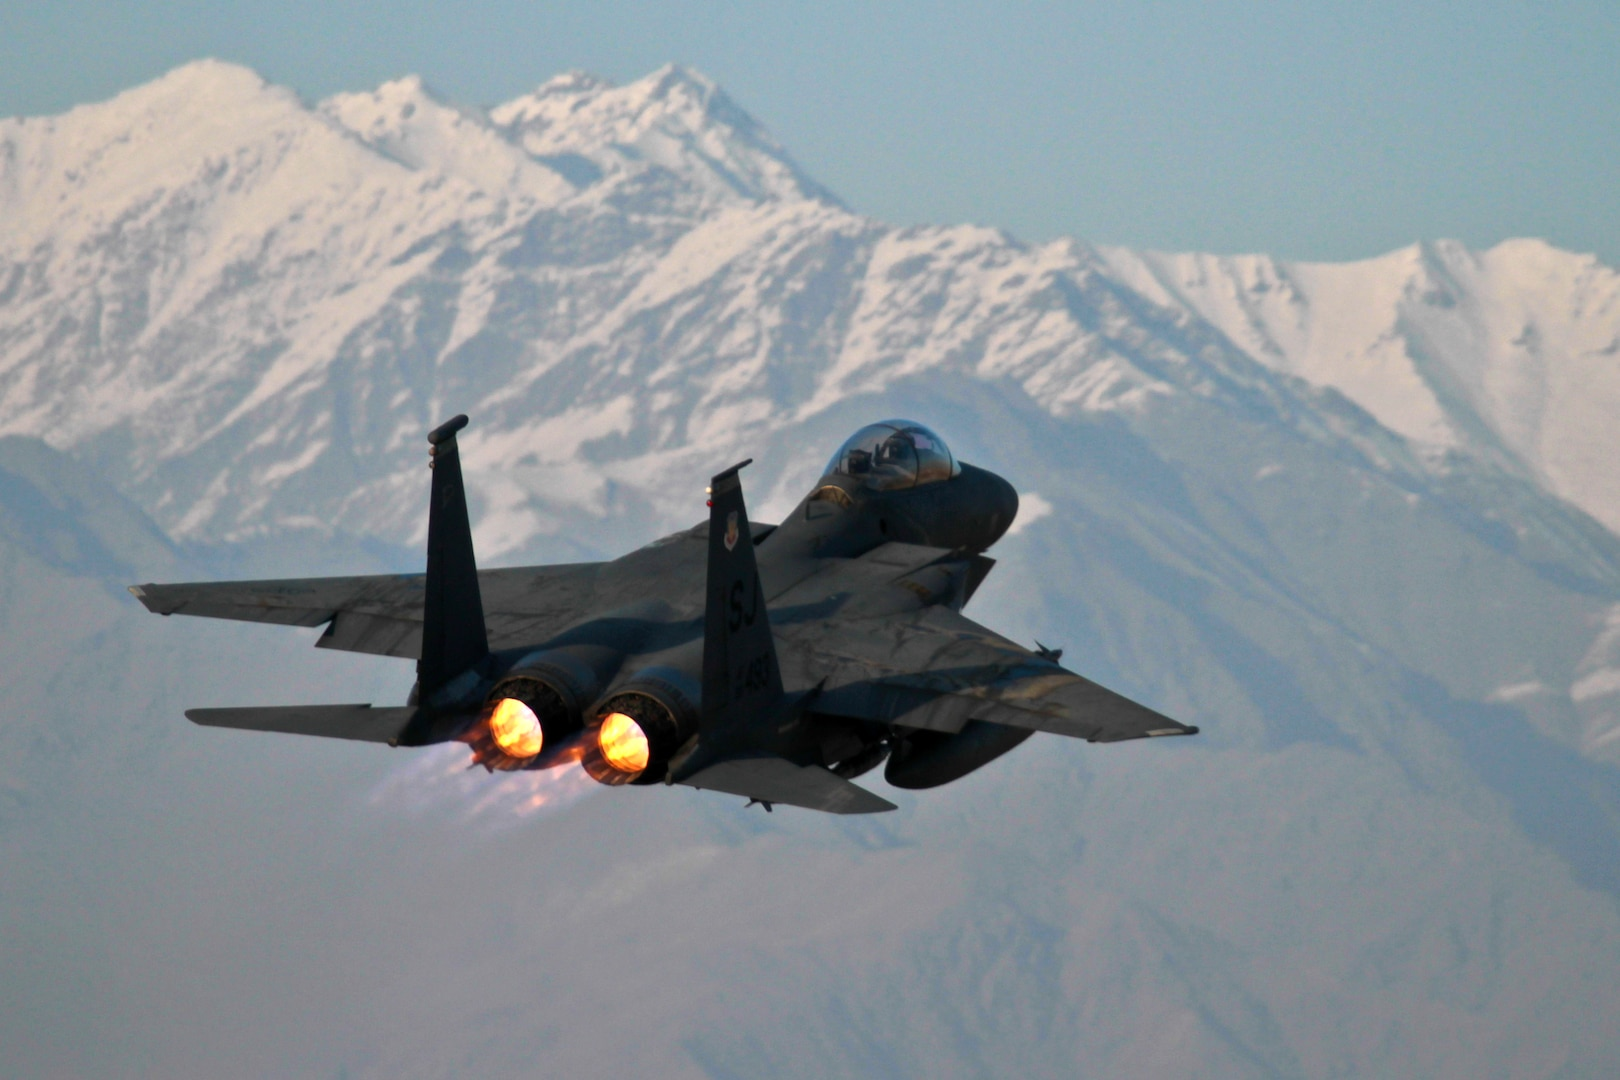 A U.S. Air Force F-15E Strike Eagle from the 335th Expeditionary Fighter Squadron takes off from Bagram Air Field, Afghanistan, Dec. 21, 2011. President Barack Obama and Defense Secretary Chuck Hagel made remarks Dec. 28, 2014, about the combat mission's conclusion in Afghanistan.